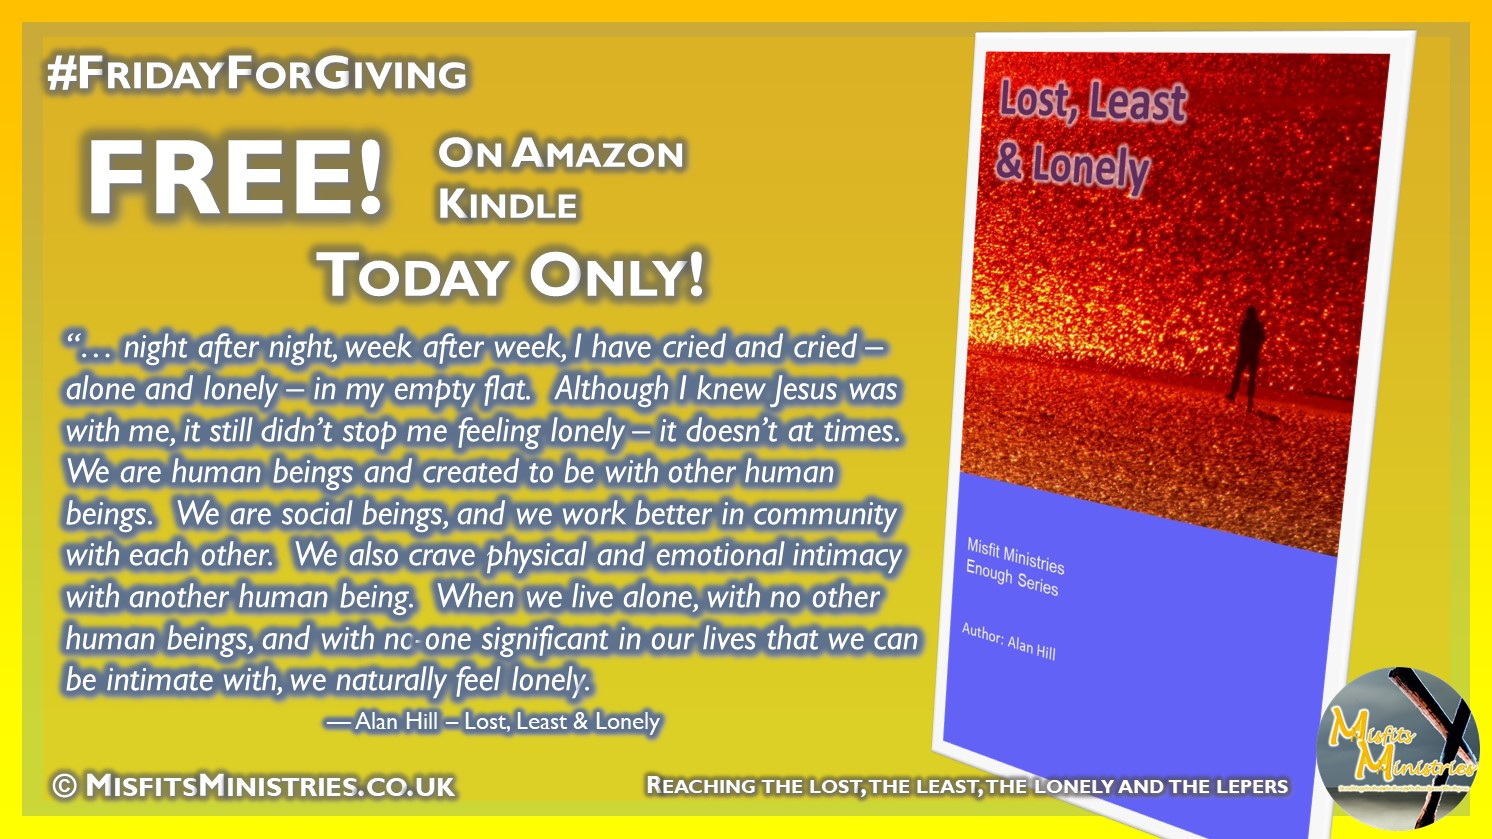 FridayForGiving - Lost, Least & Lonely - Kindle version